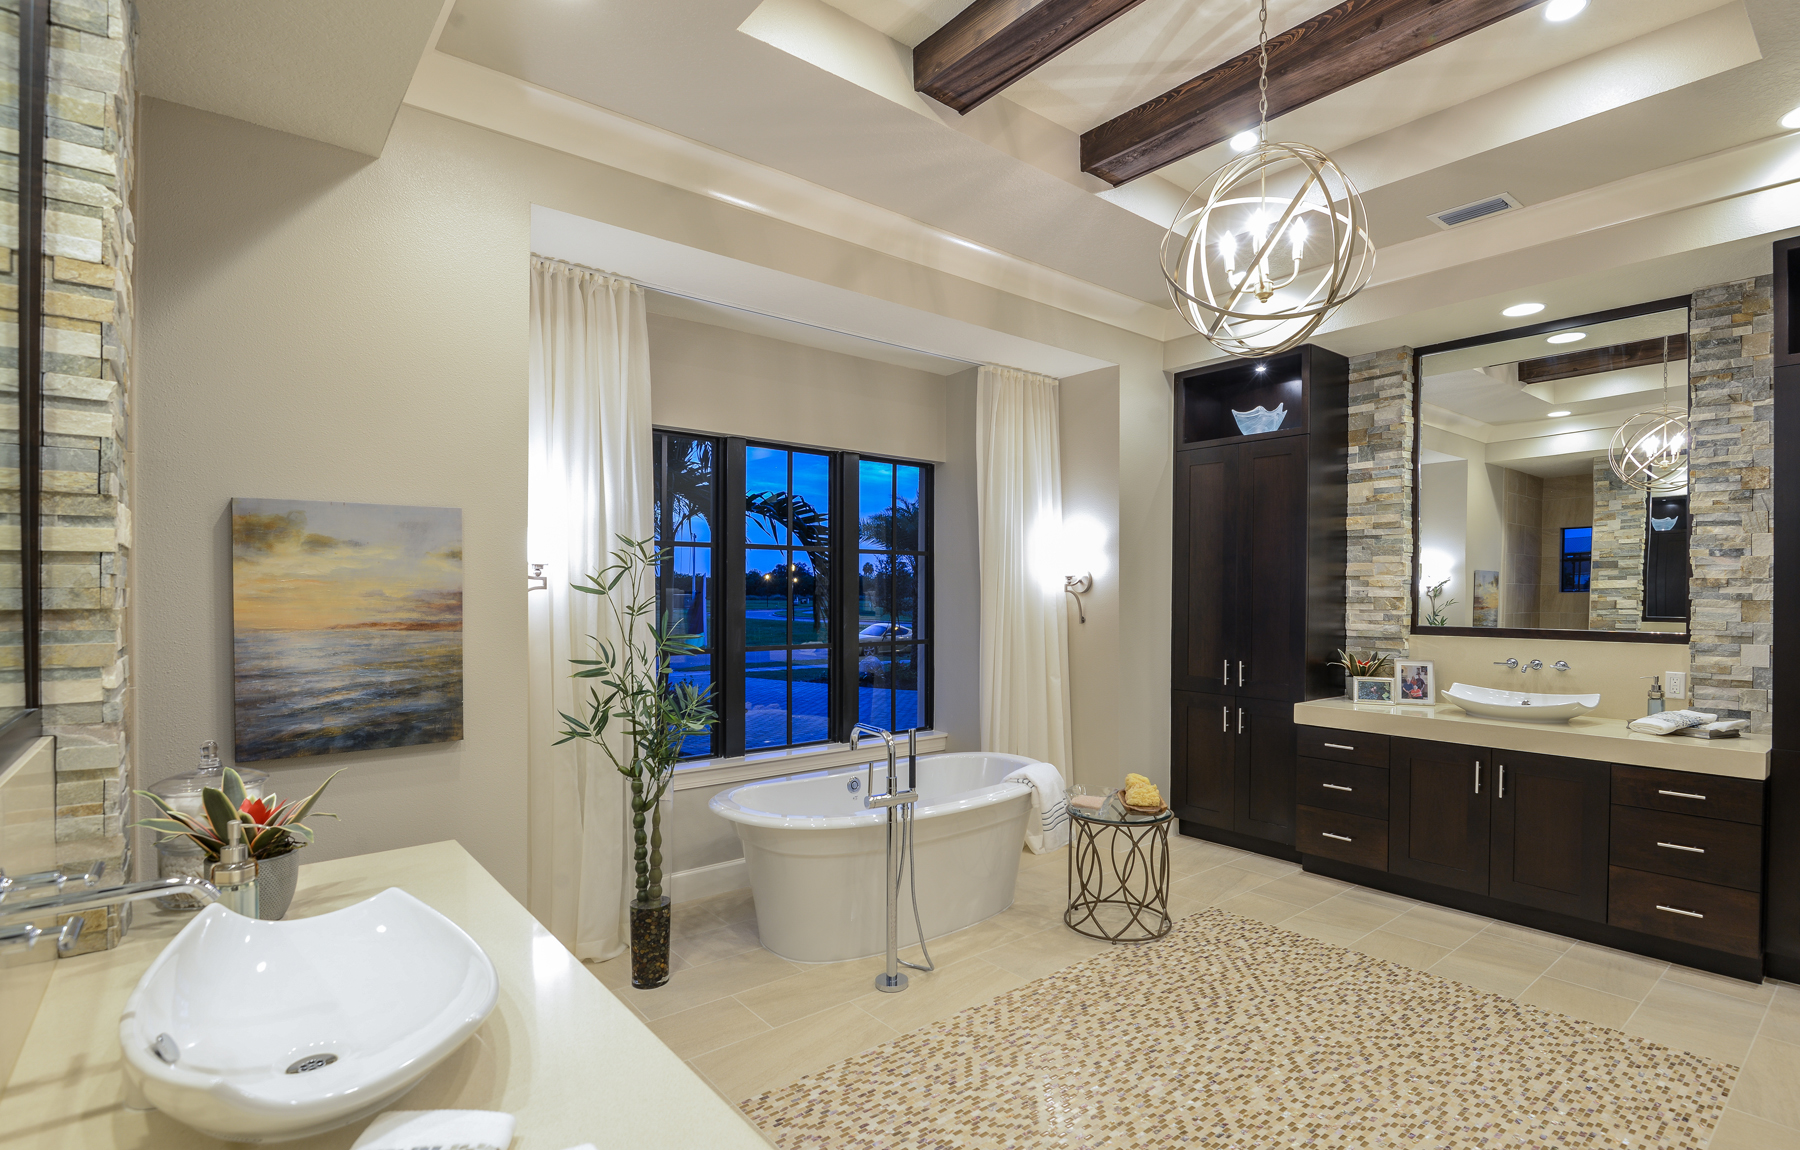 The Mindera John Cannon Homes master bath